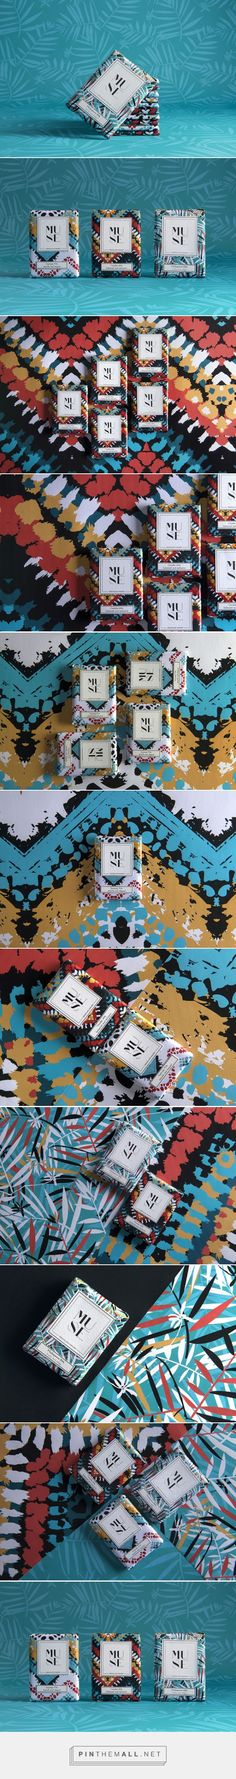 Muse Origins Chocolate Packaging designed by Mo Kalache (Lebanon) - http://www.packagingoftheworld.com/2016/01/muse-origins.html